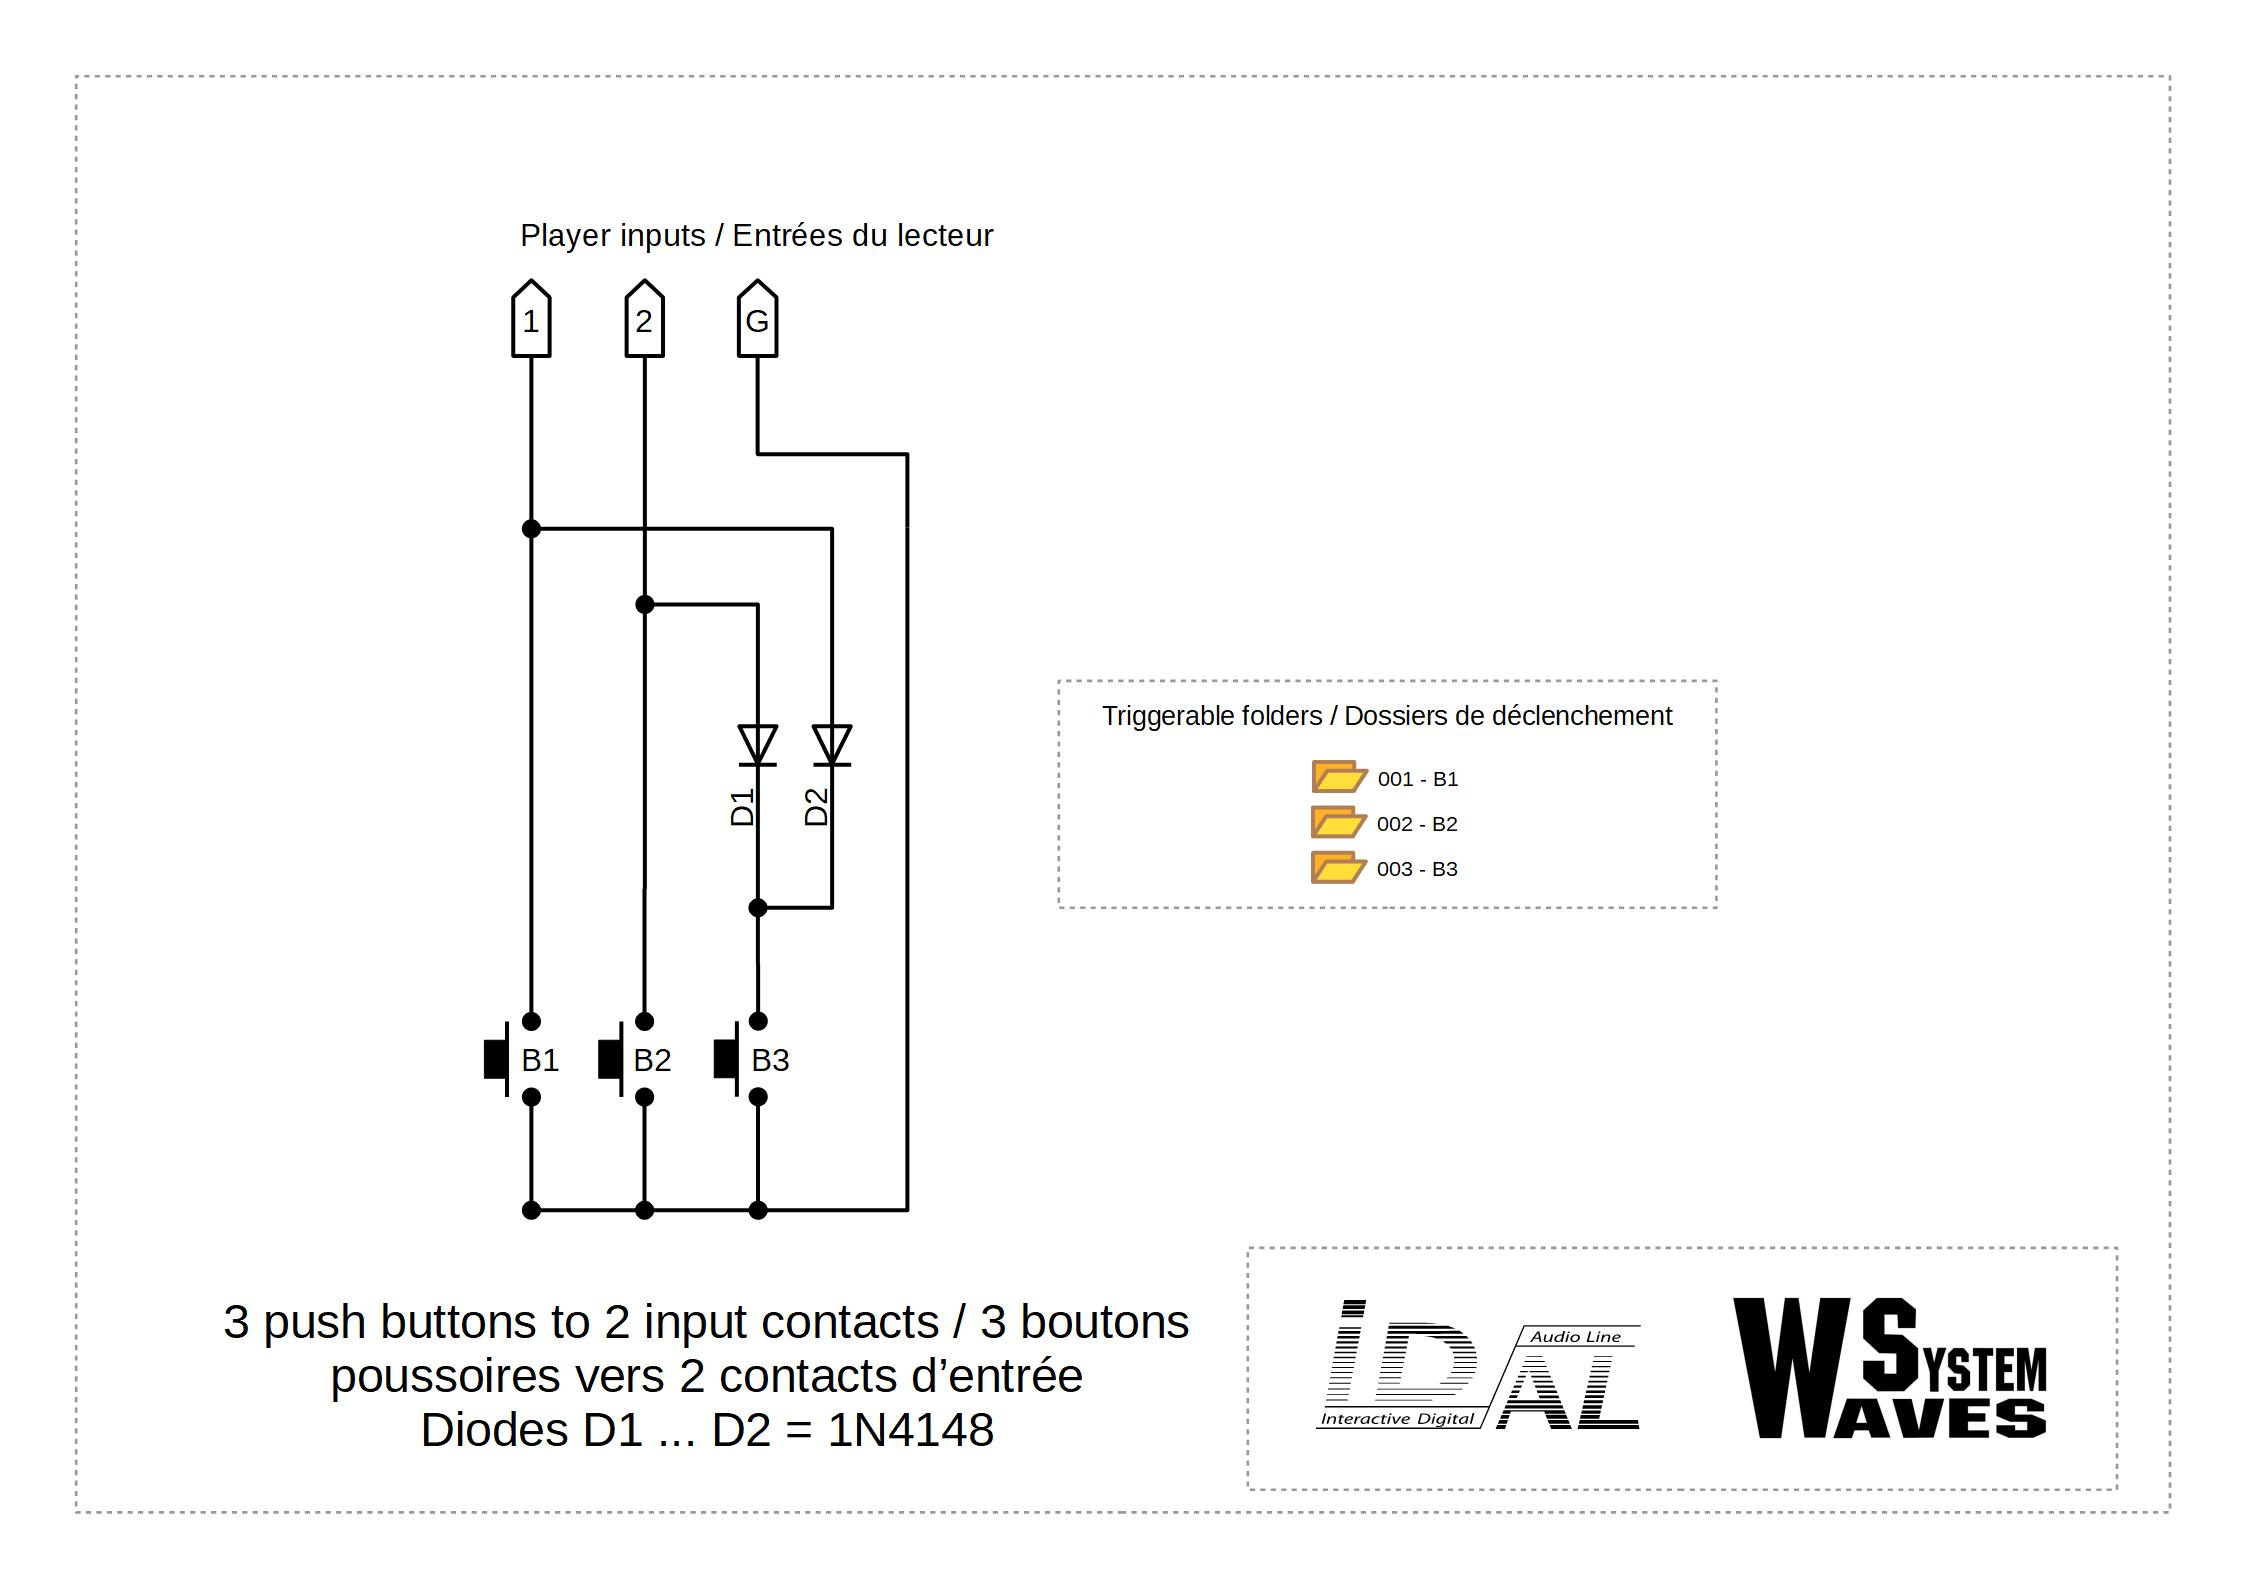 Micro Player Mkiii Push Button Wiring Diagram 3 Buttons To 2 Input Contacts With Diodes